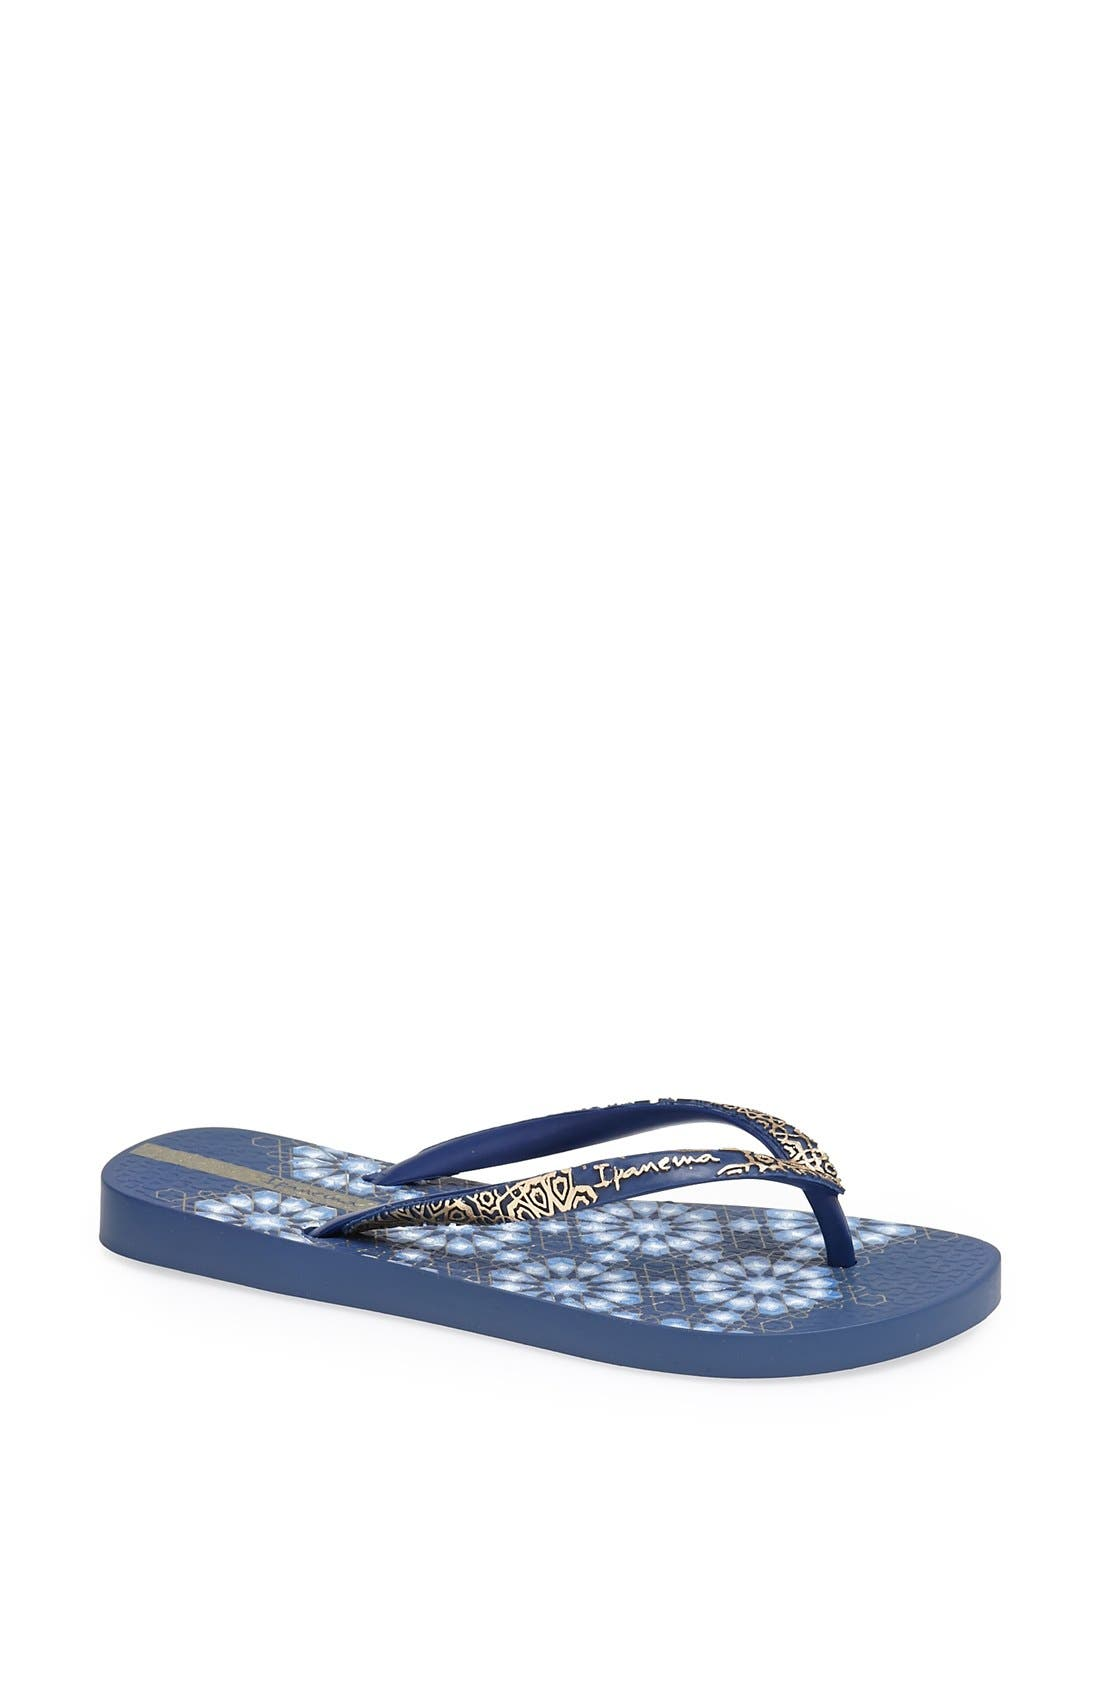 Alternate Image 1 Selected - Ipanema 'Mandala' Flip Flop